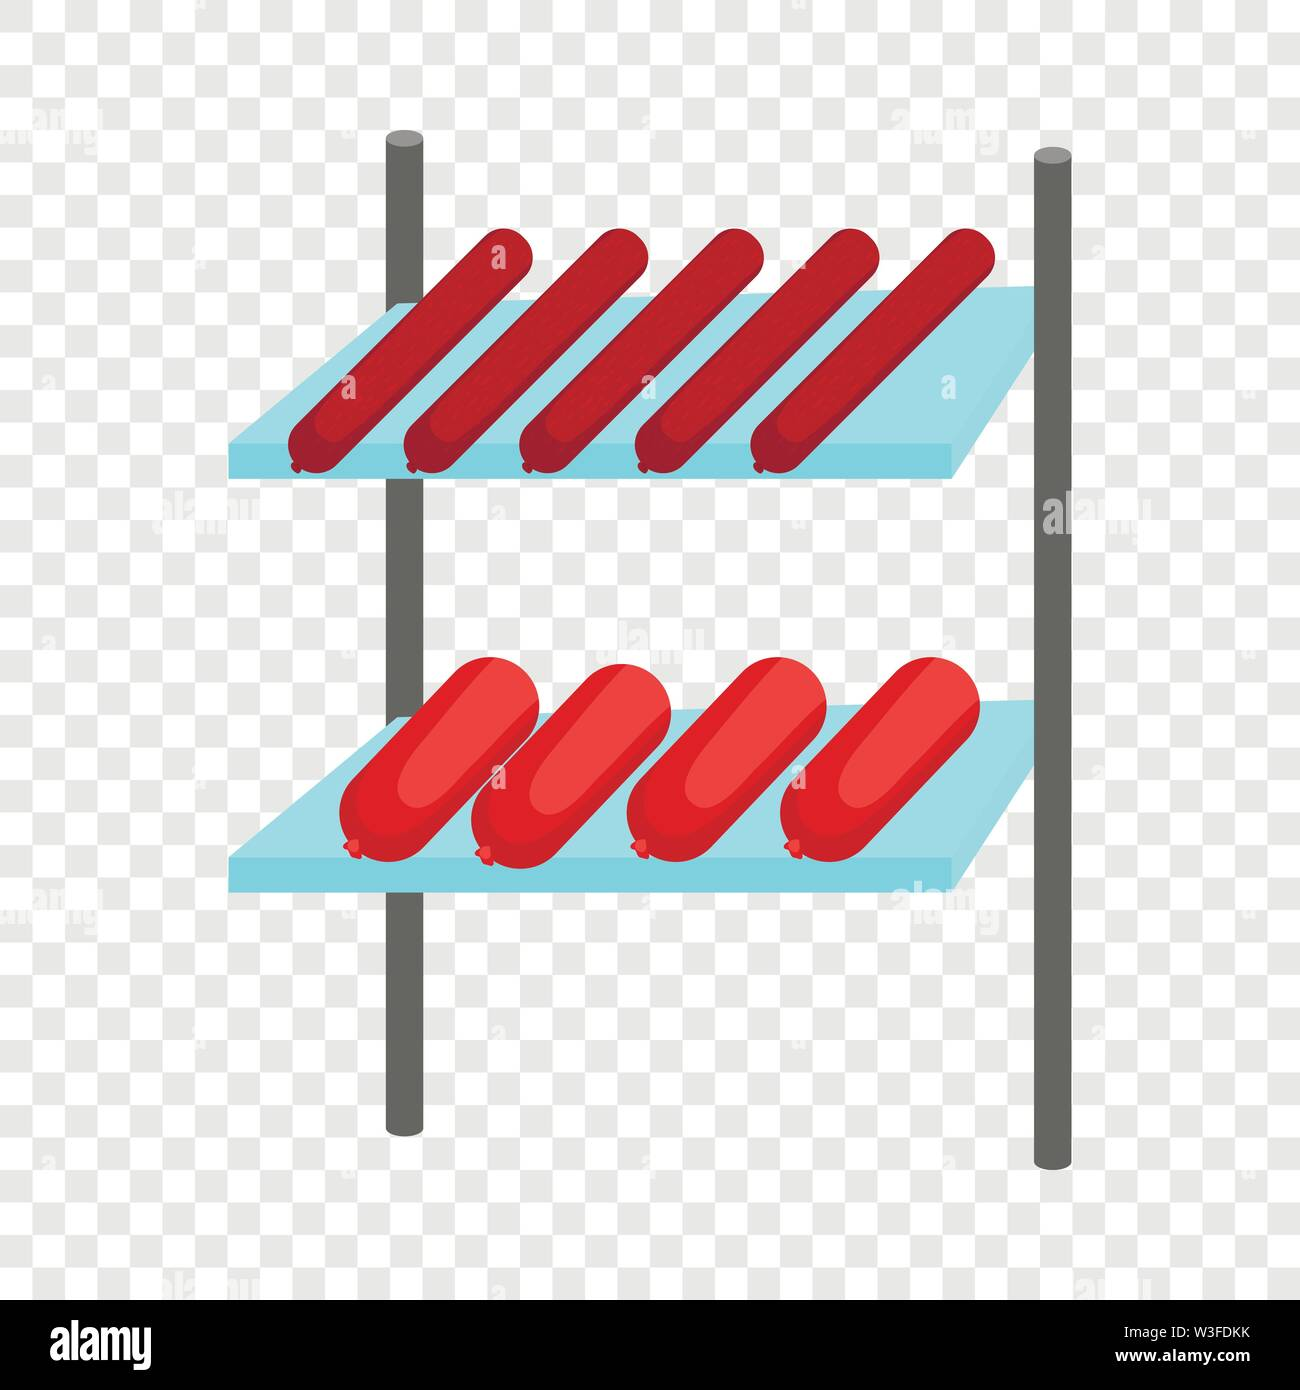 Shelves with sausages icon, cartoon style - Stock Image